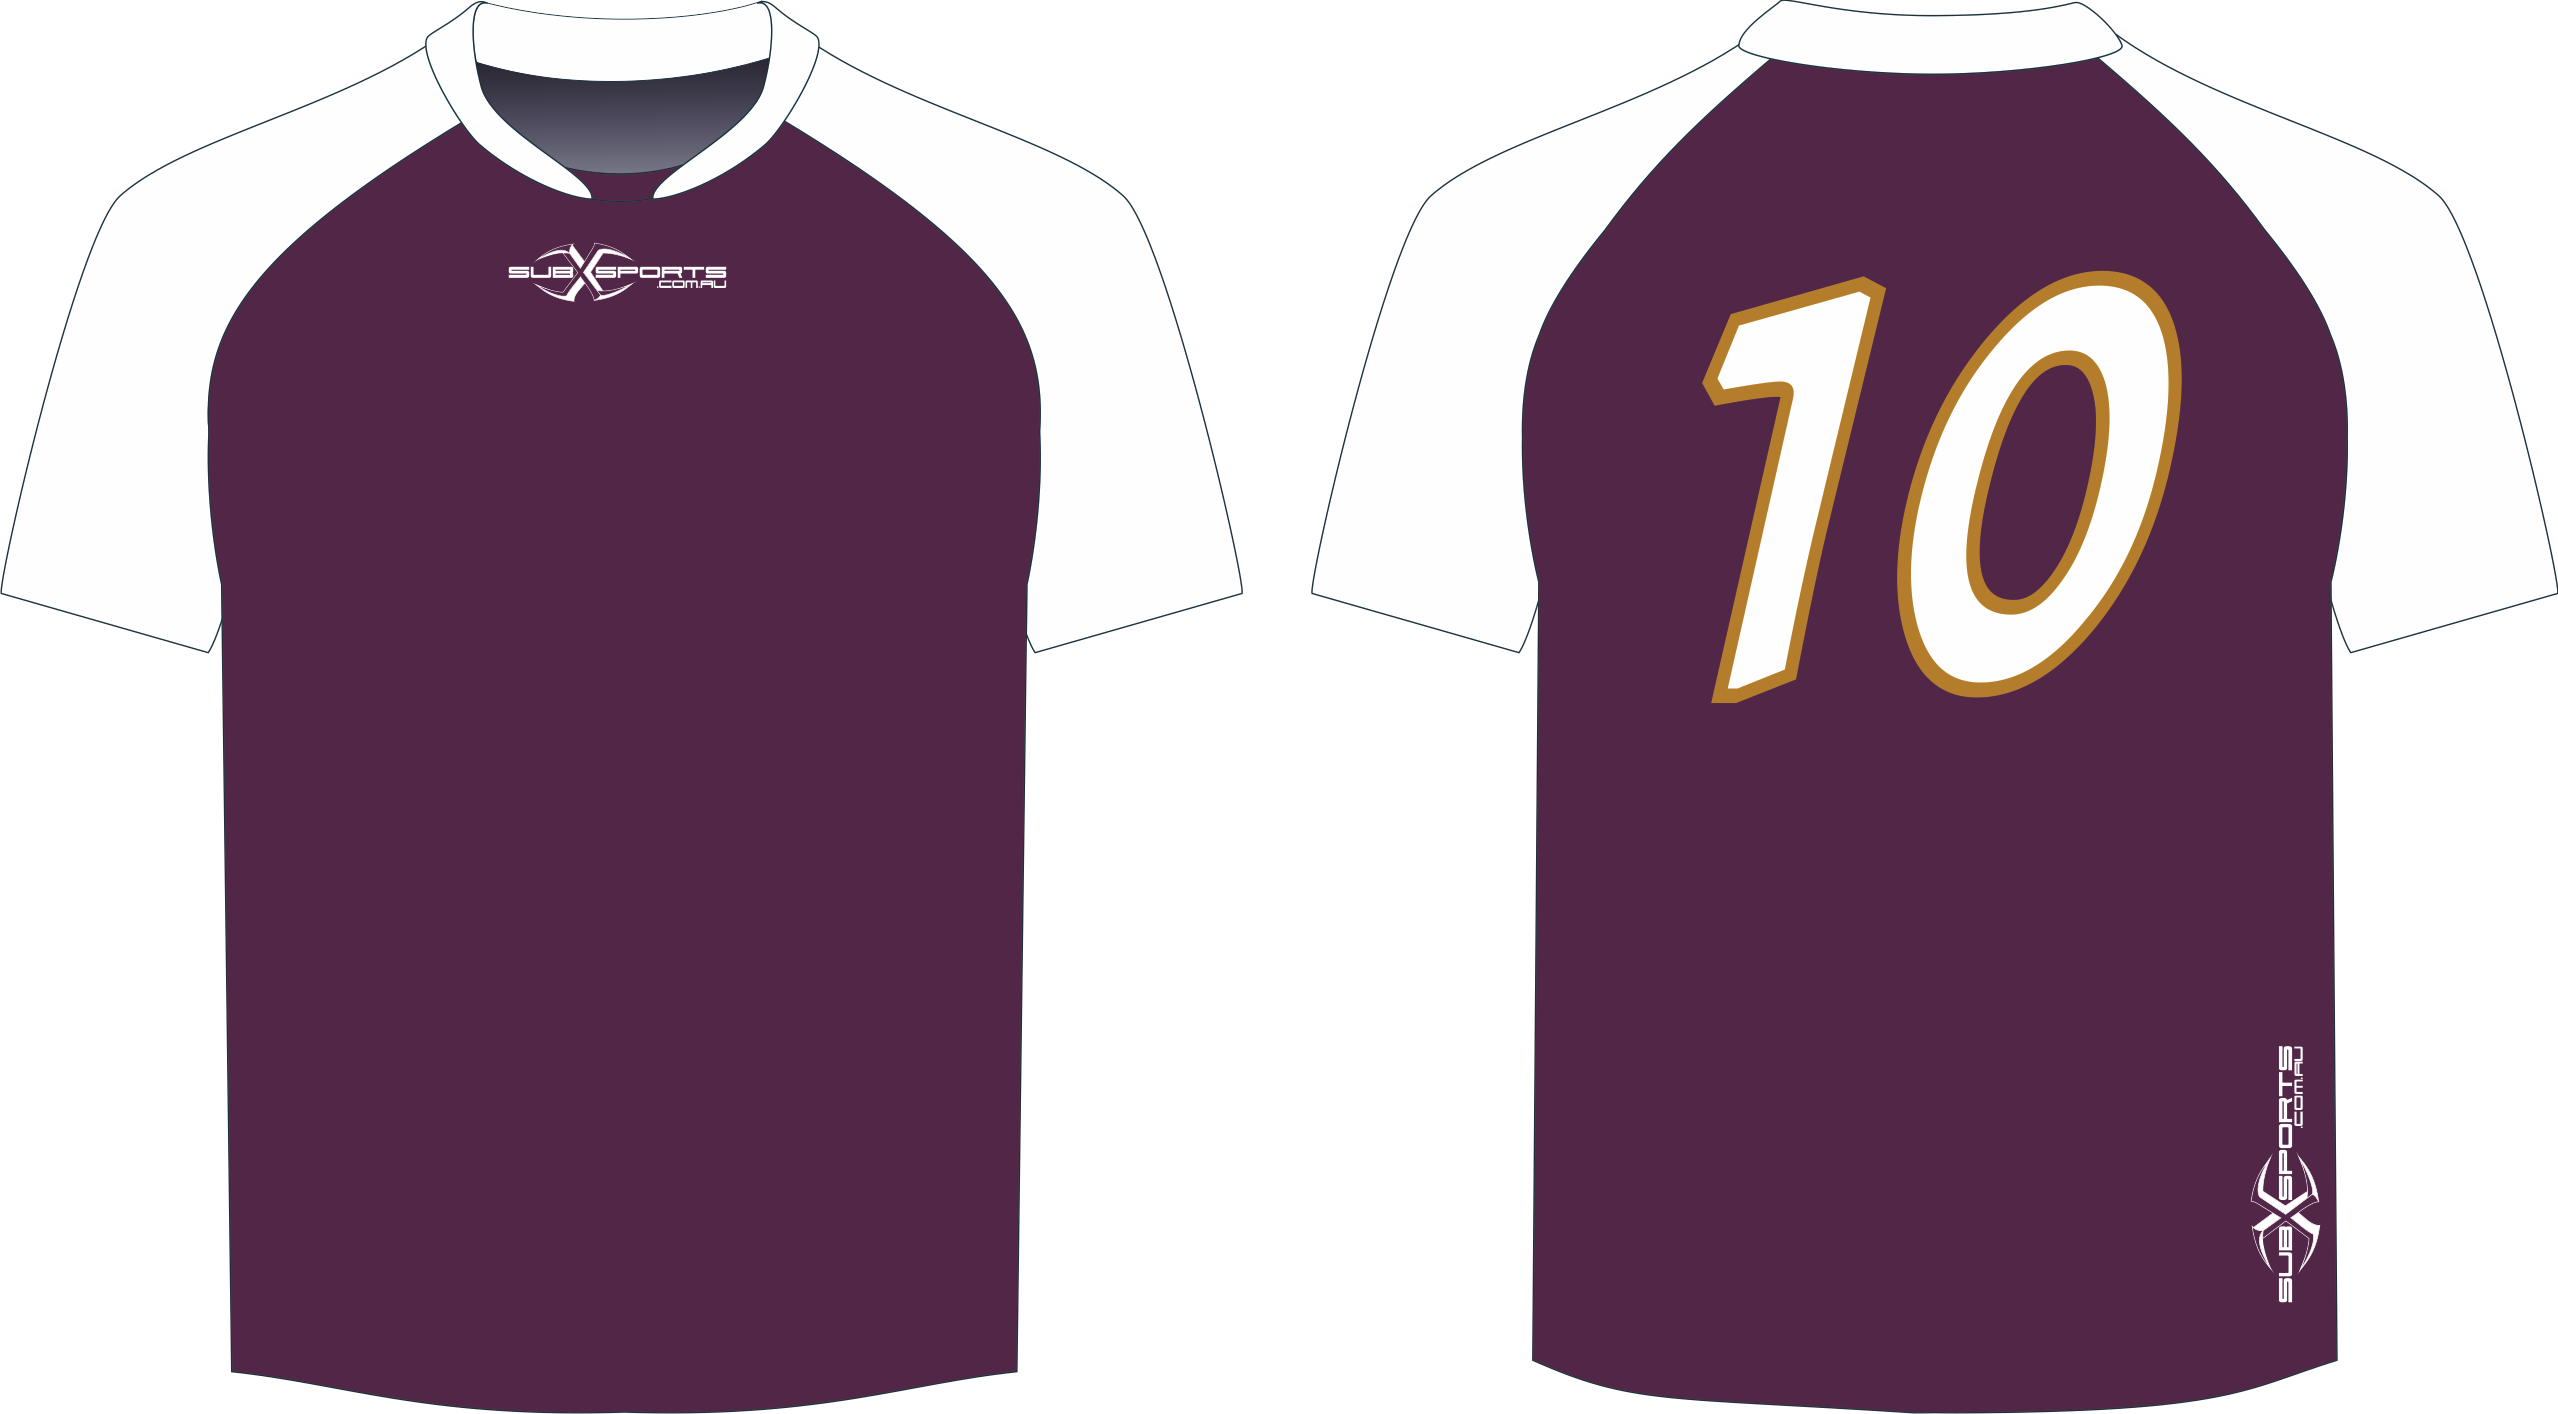 S206XJ Jersey Maroon White.png